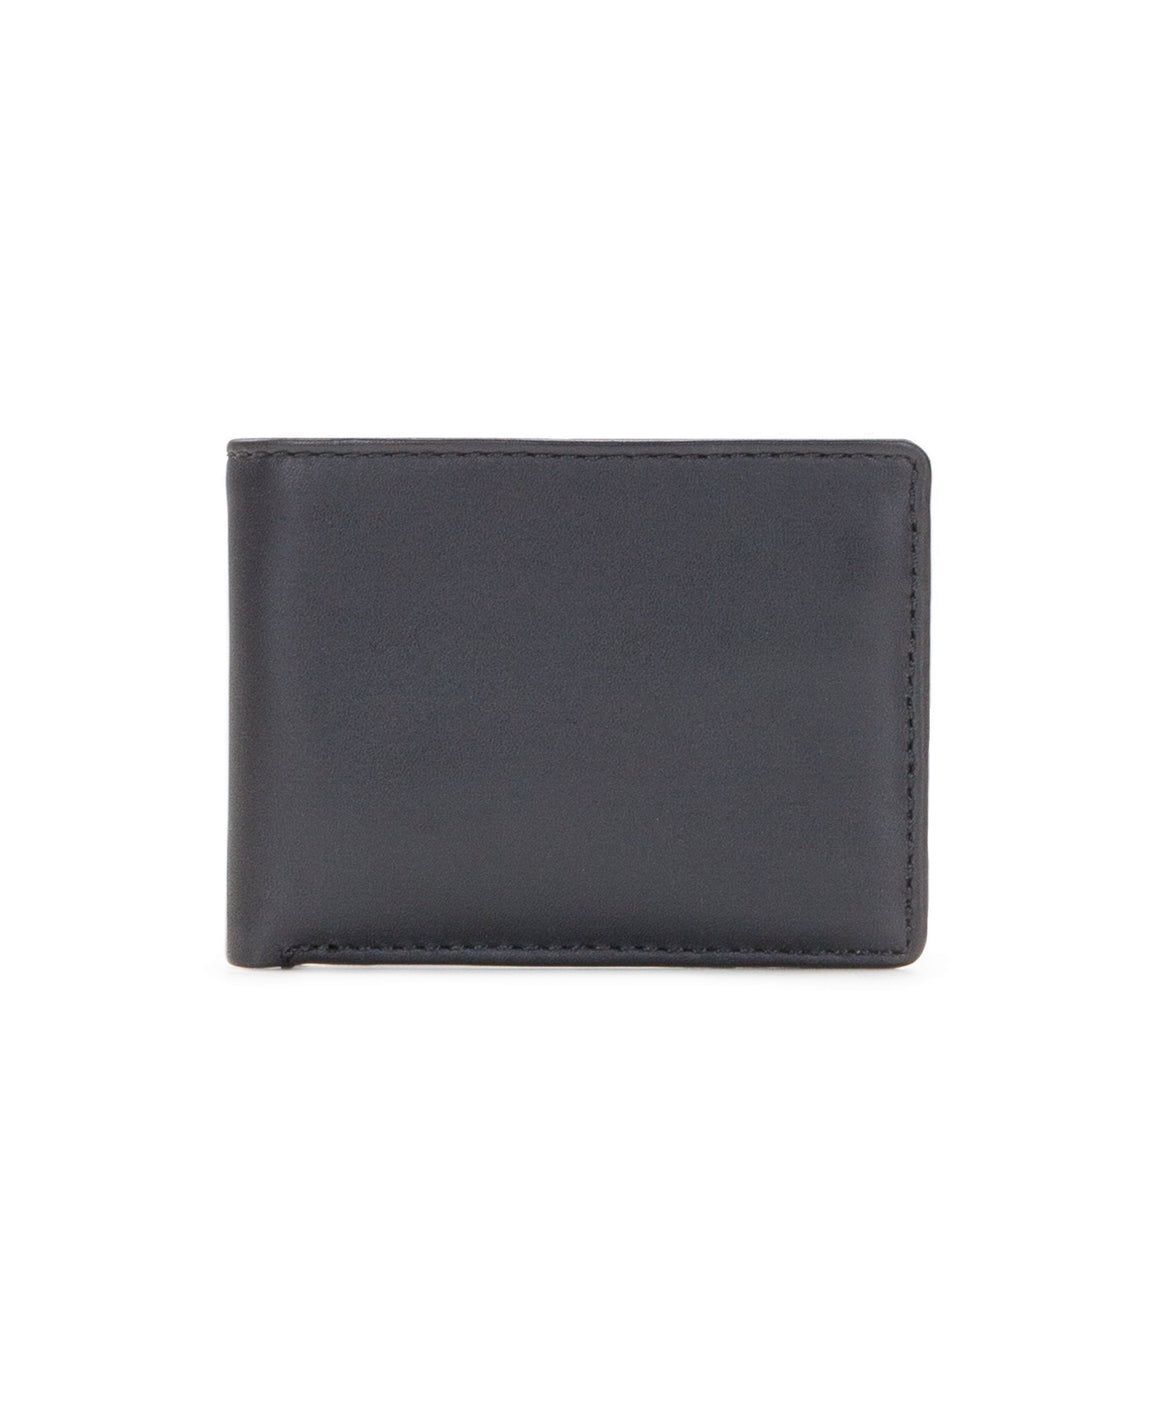 Patricia Nash Men's Leather Lucca Double Billfold ID Wallet Black